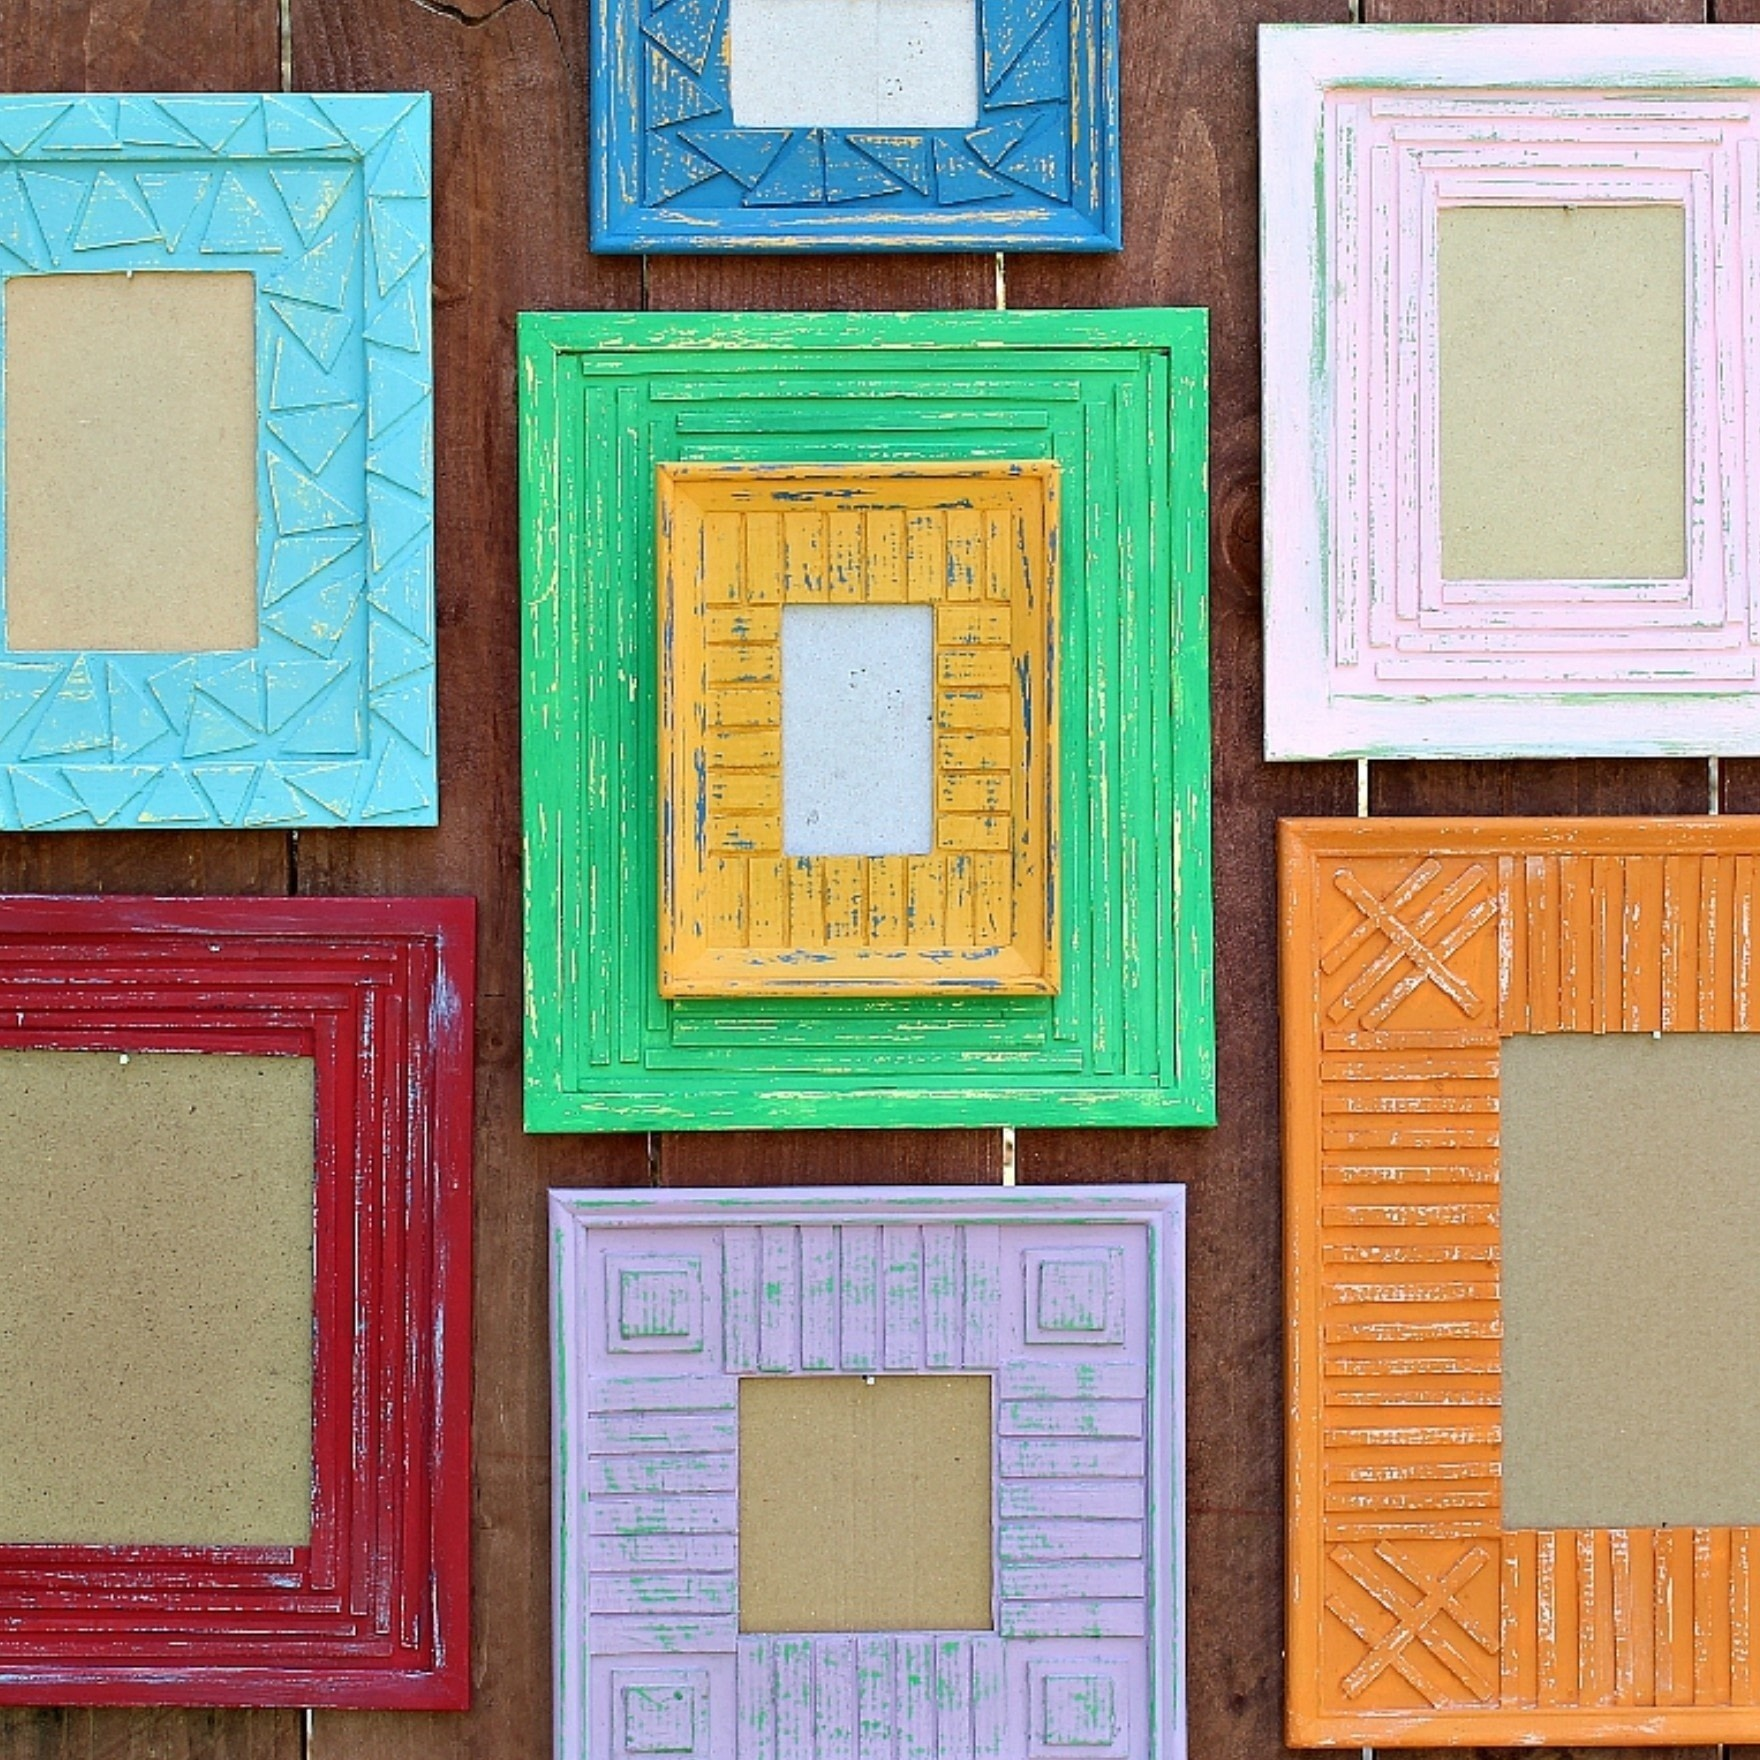 Dollar Store Frame Makeovers · How To Make A Recycled Photo Frame ...